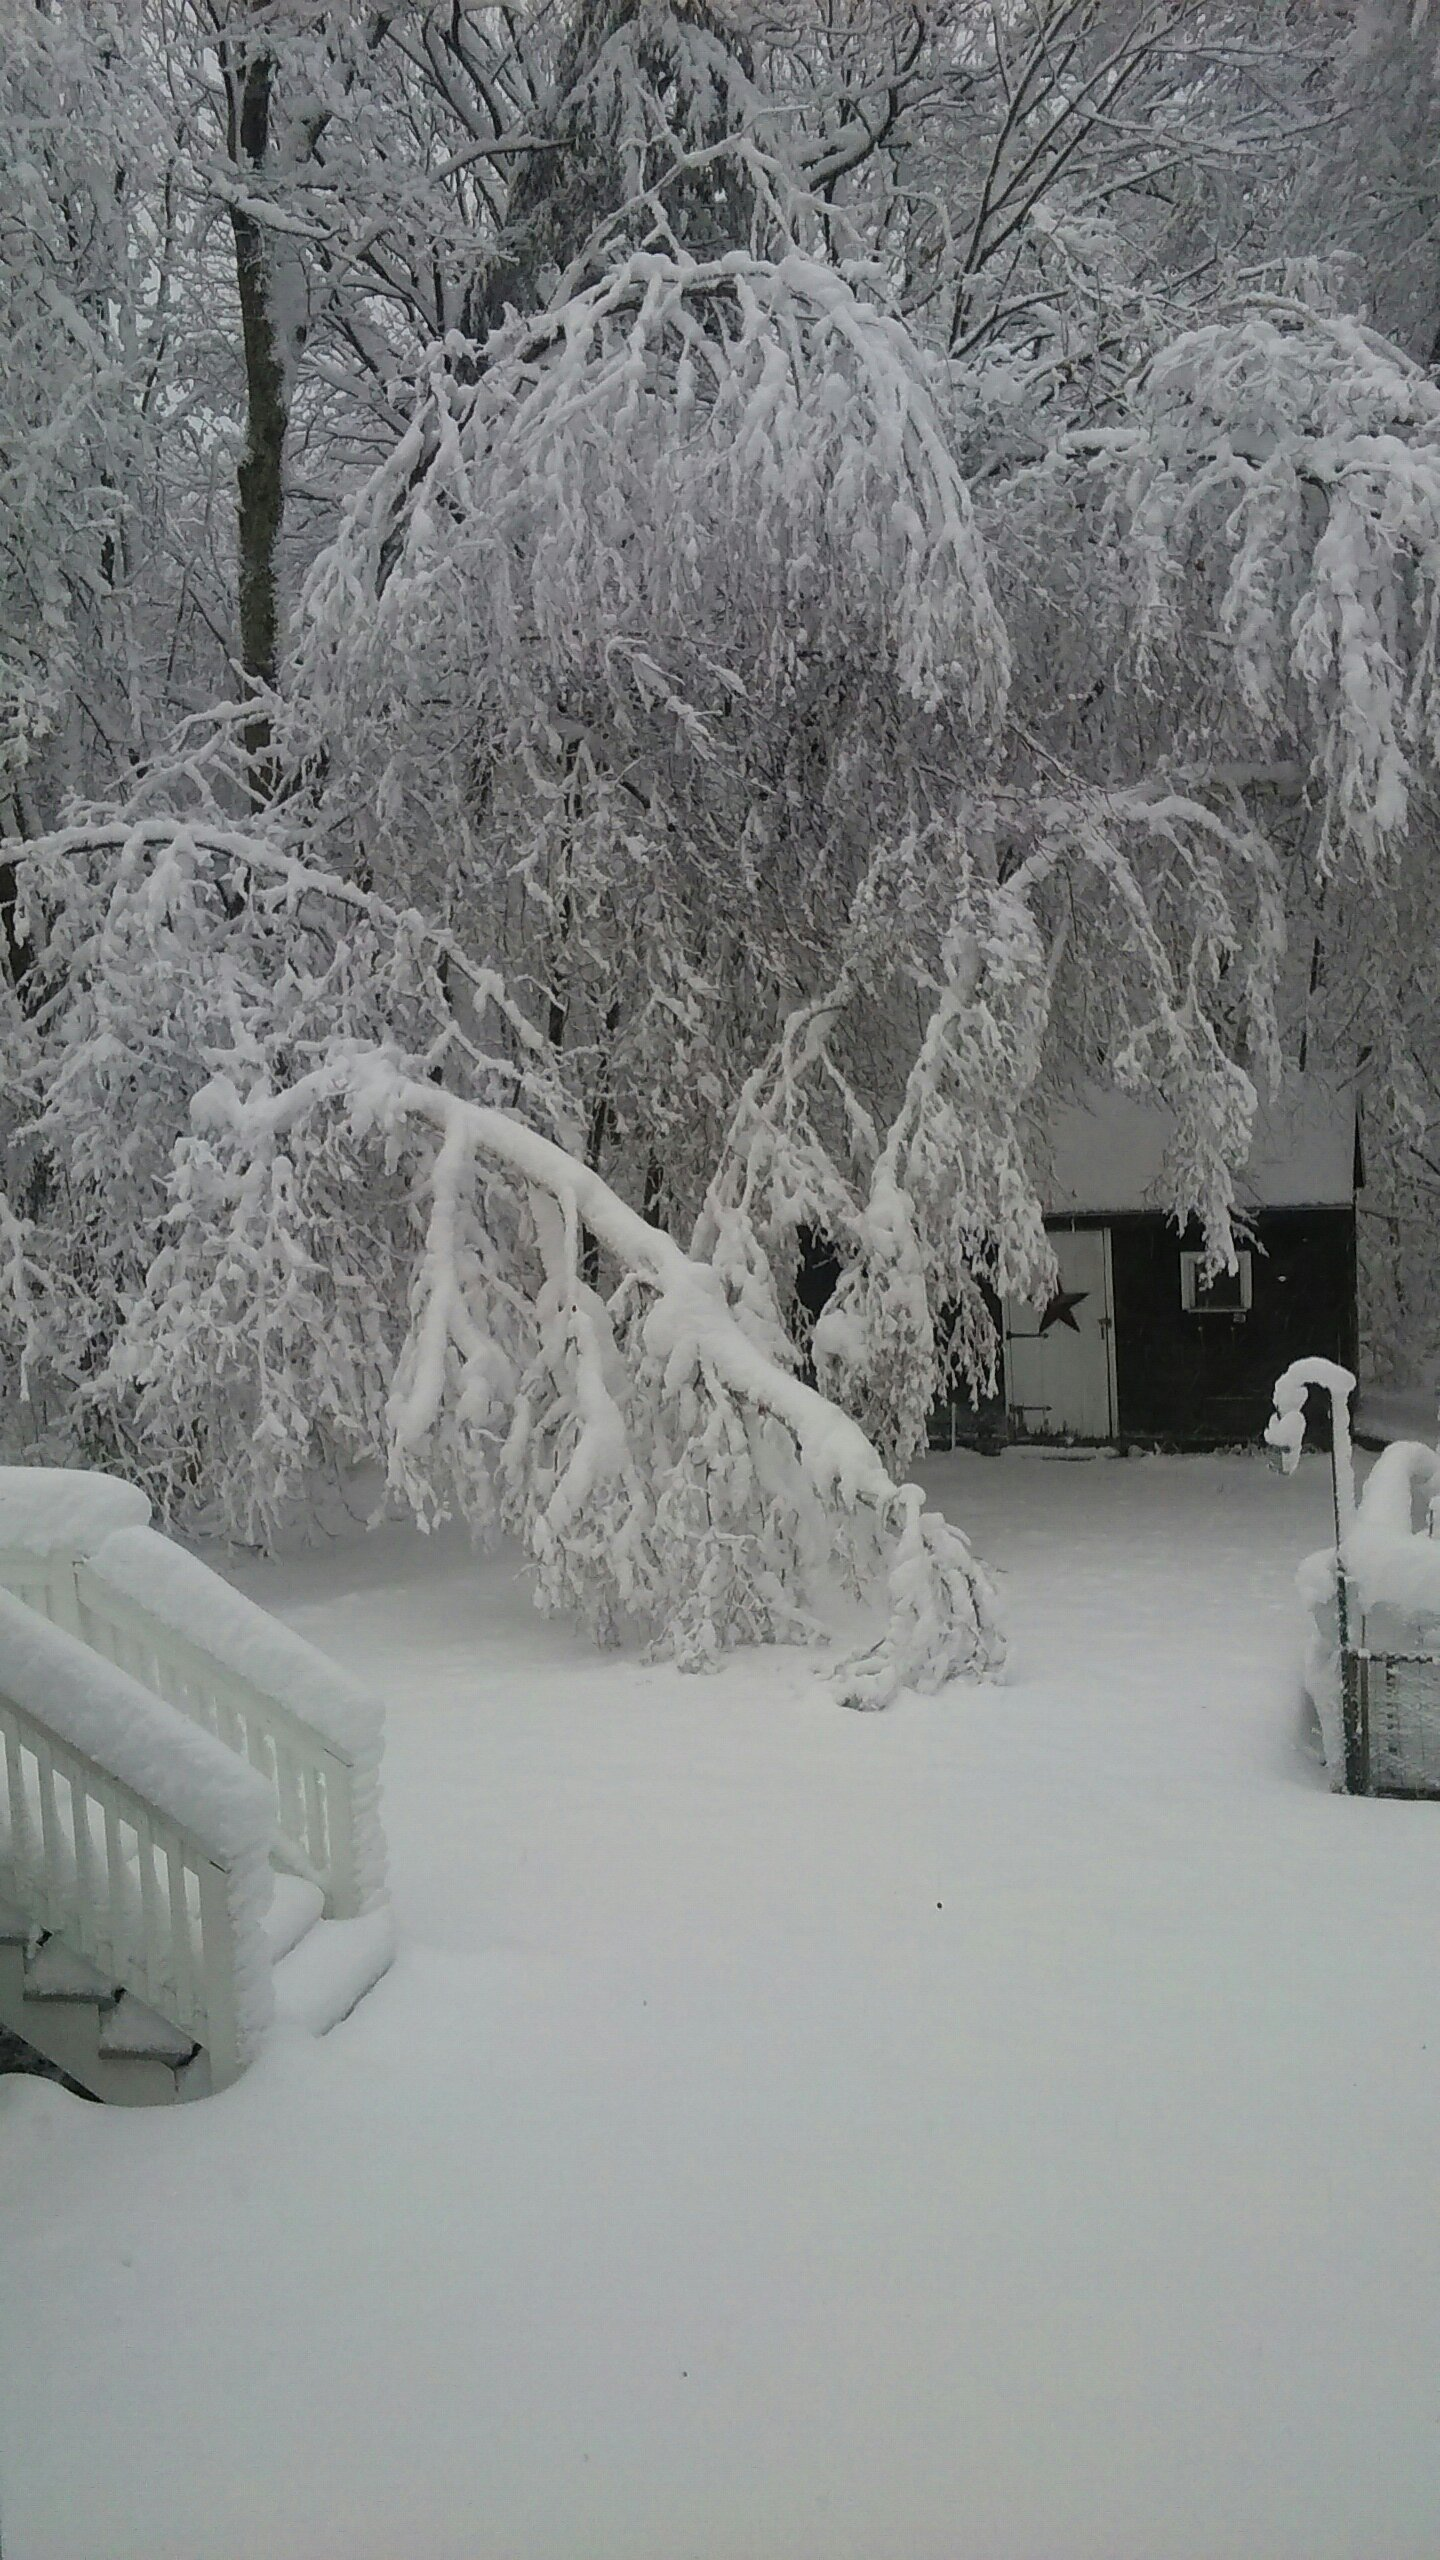 Trees bent over with heavy snow.